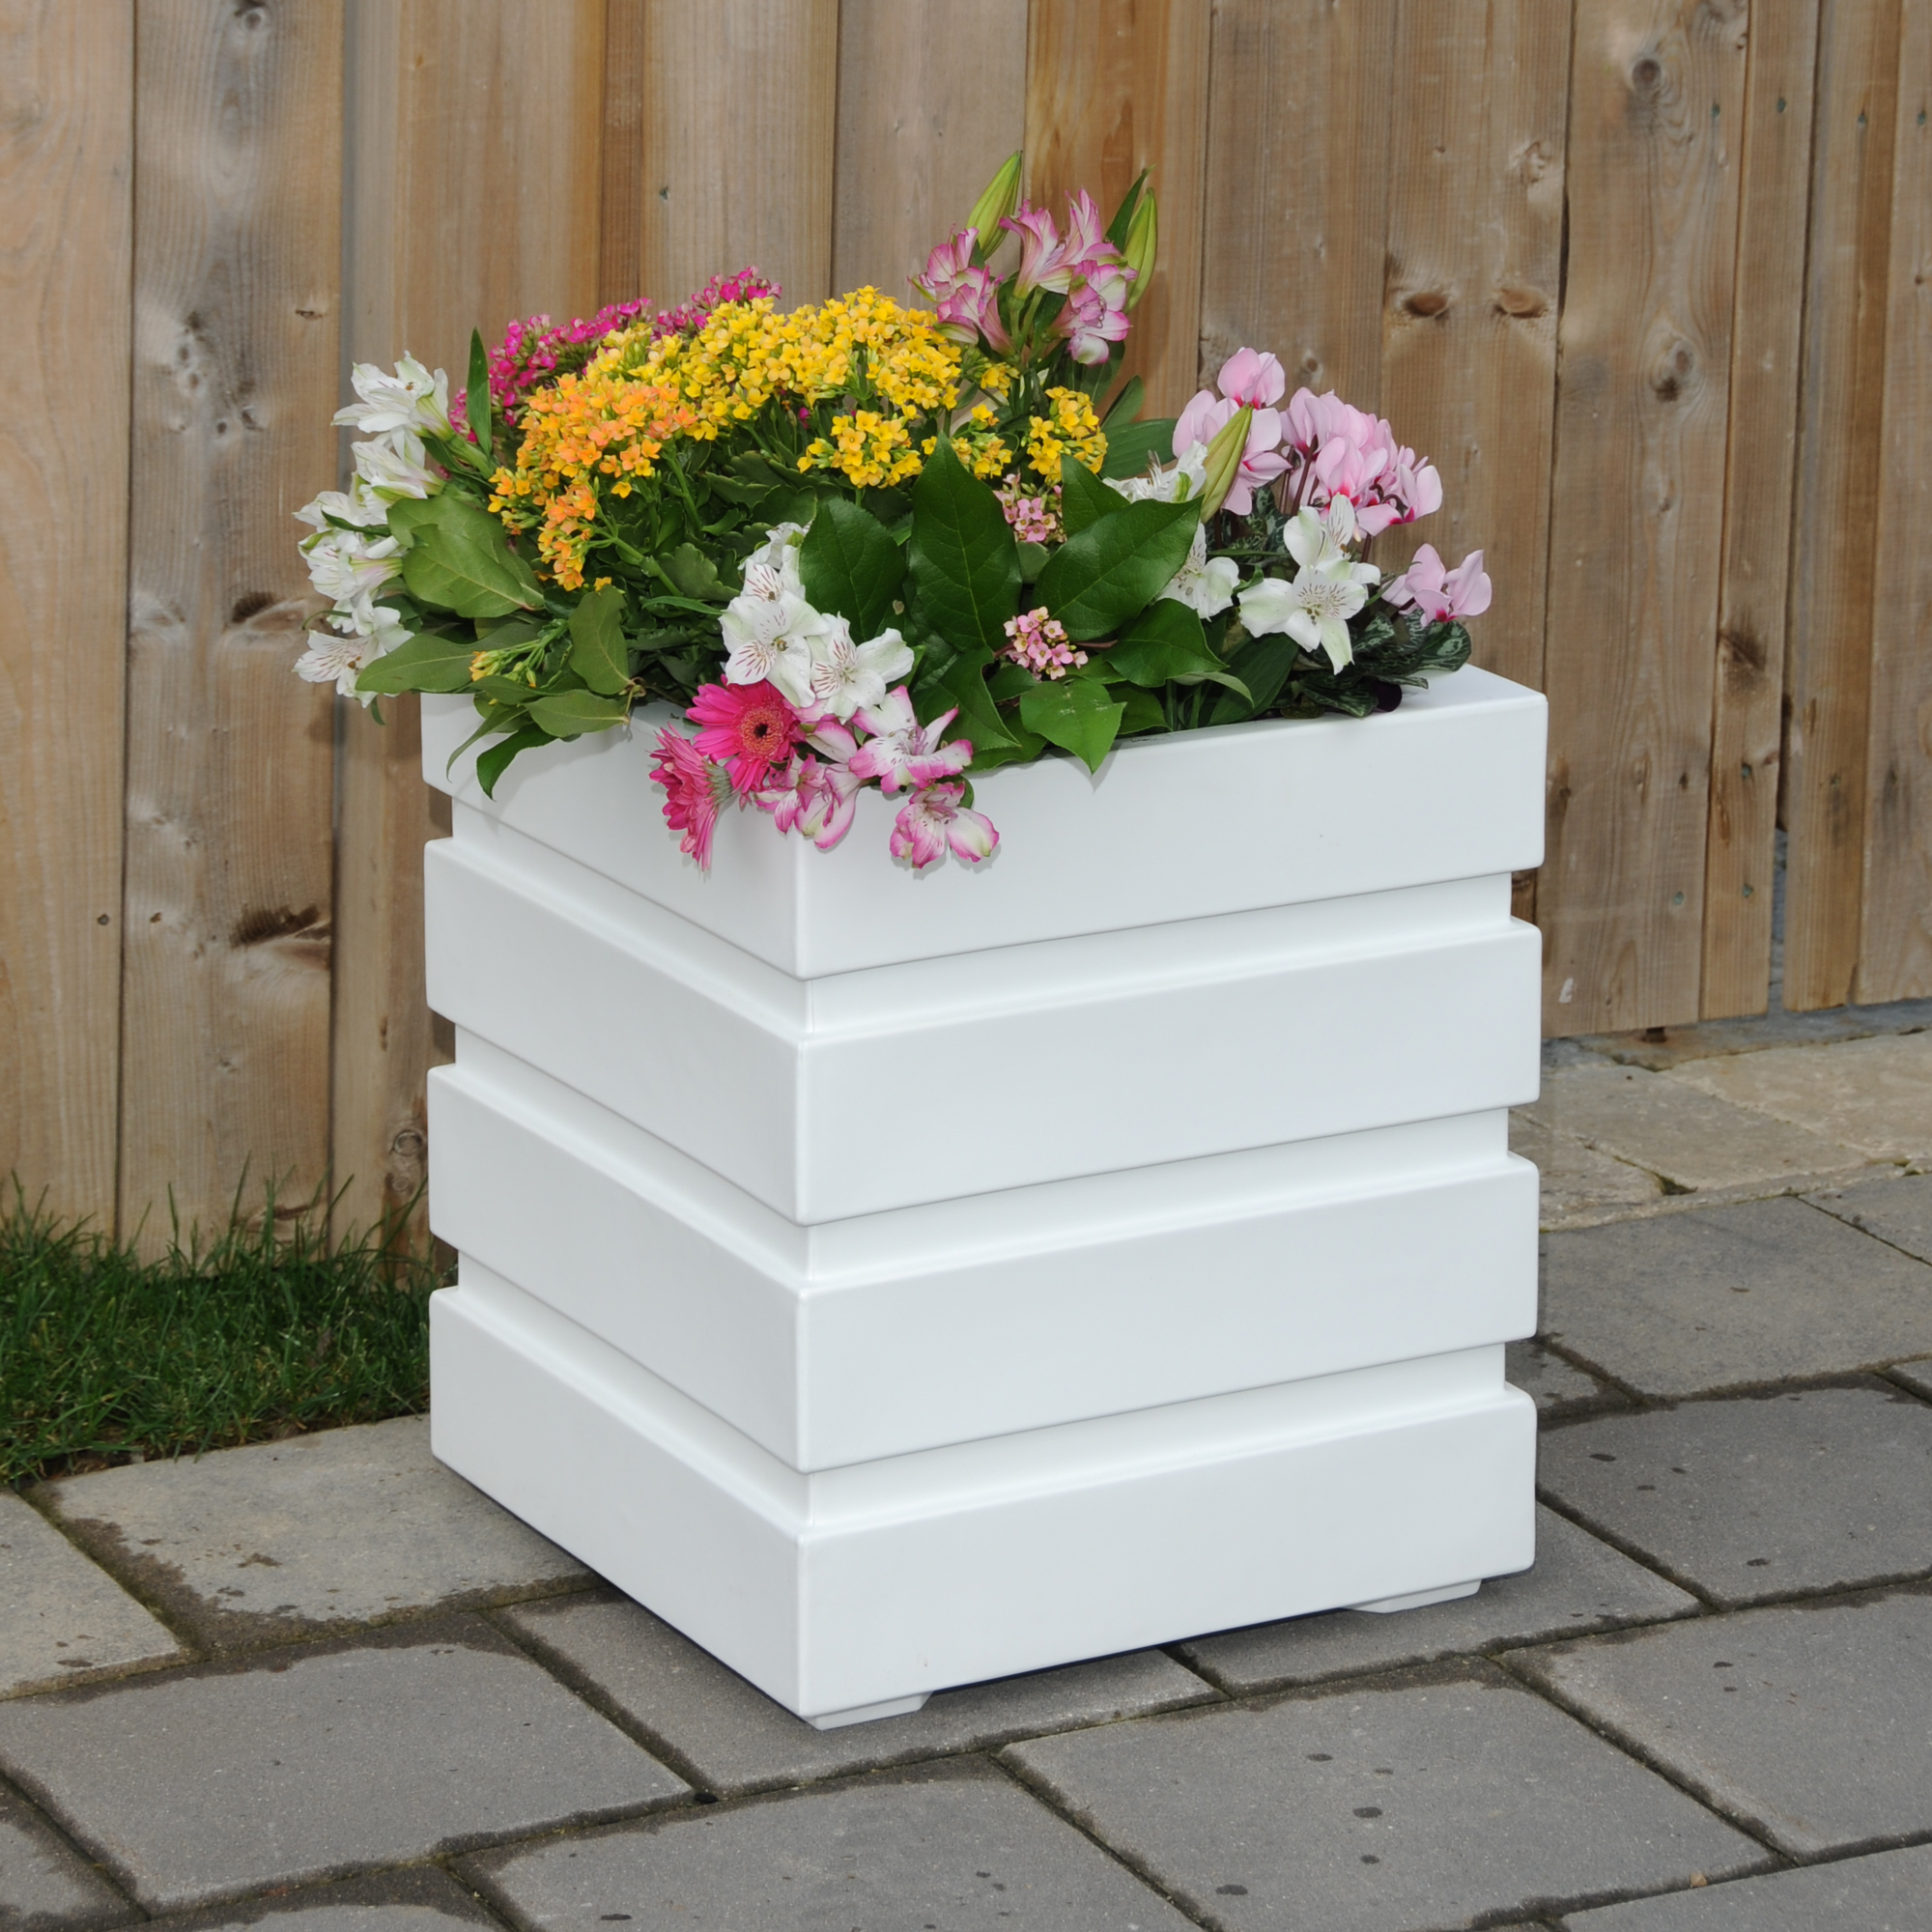 Freeport Patio Planter 18x18 White by Mayne Inc.